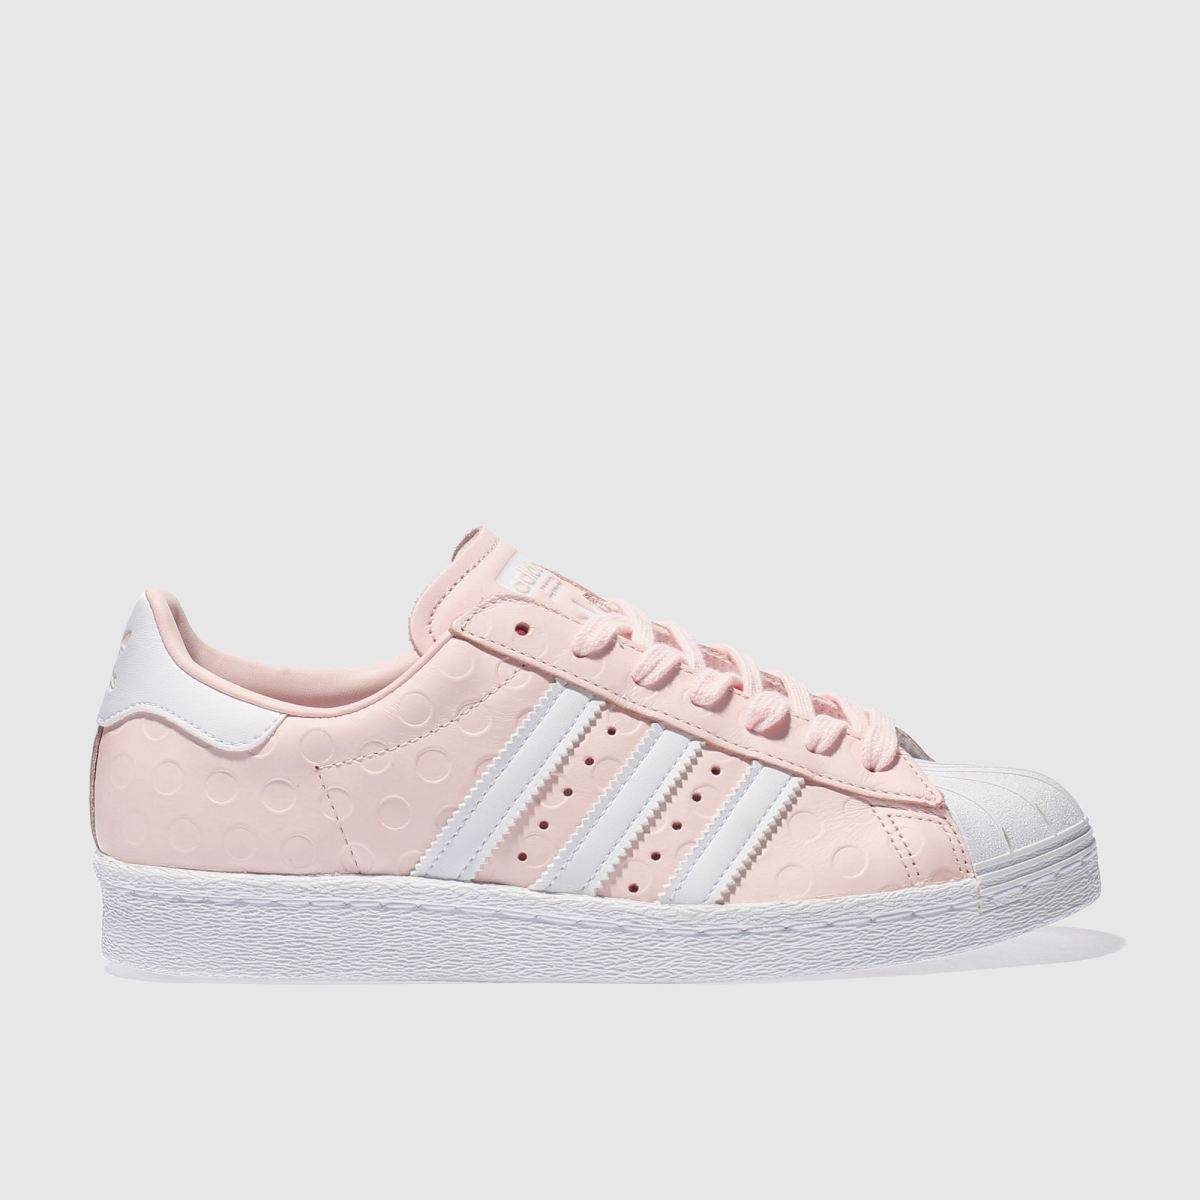 adidas pale pink superstar 80s trainers